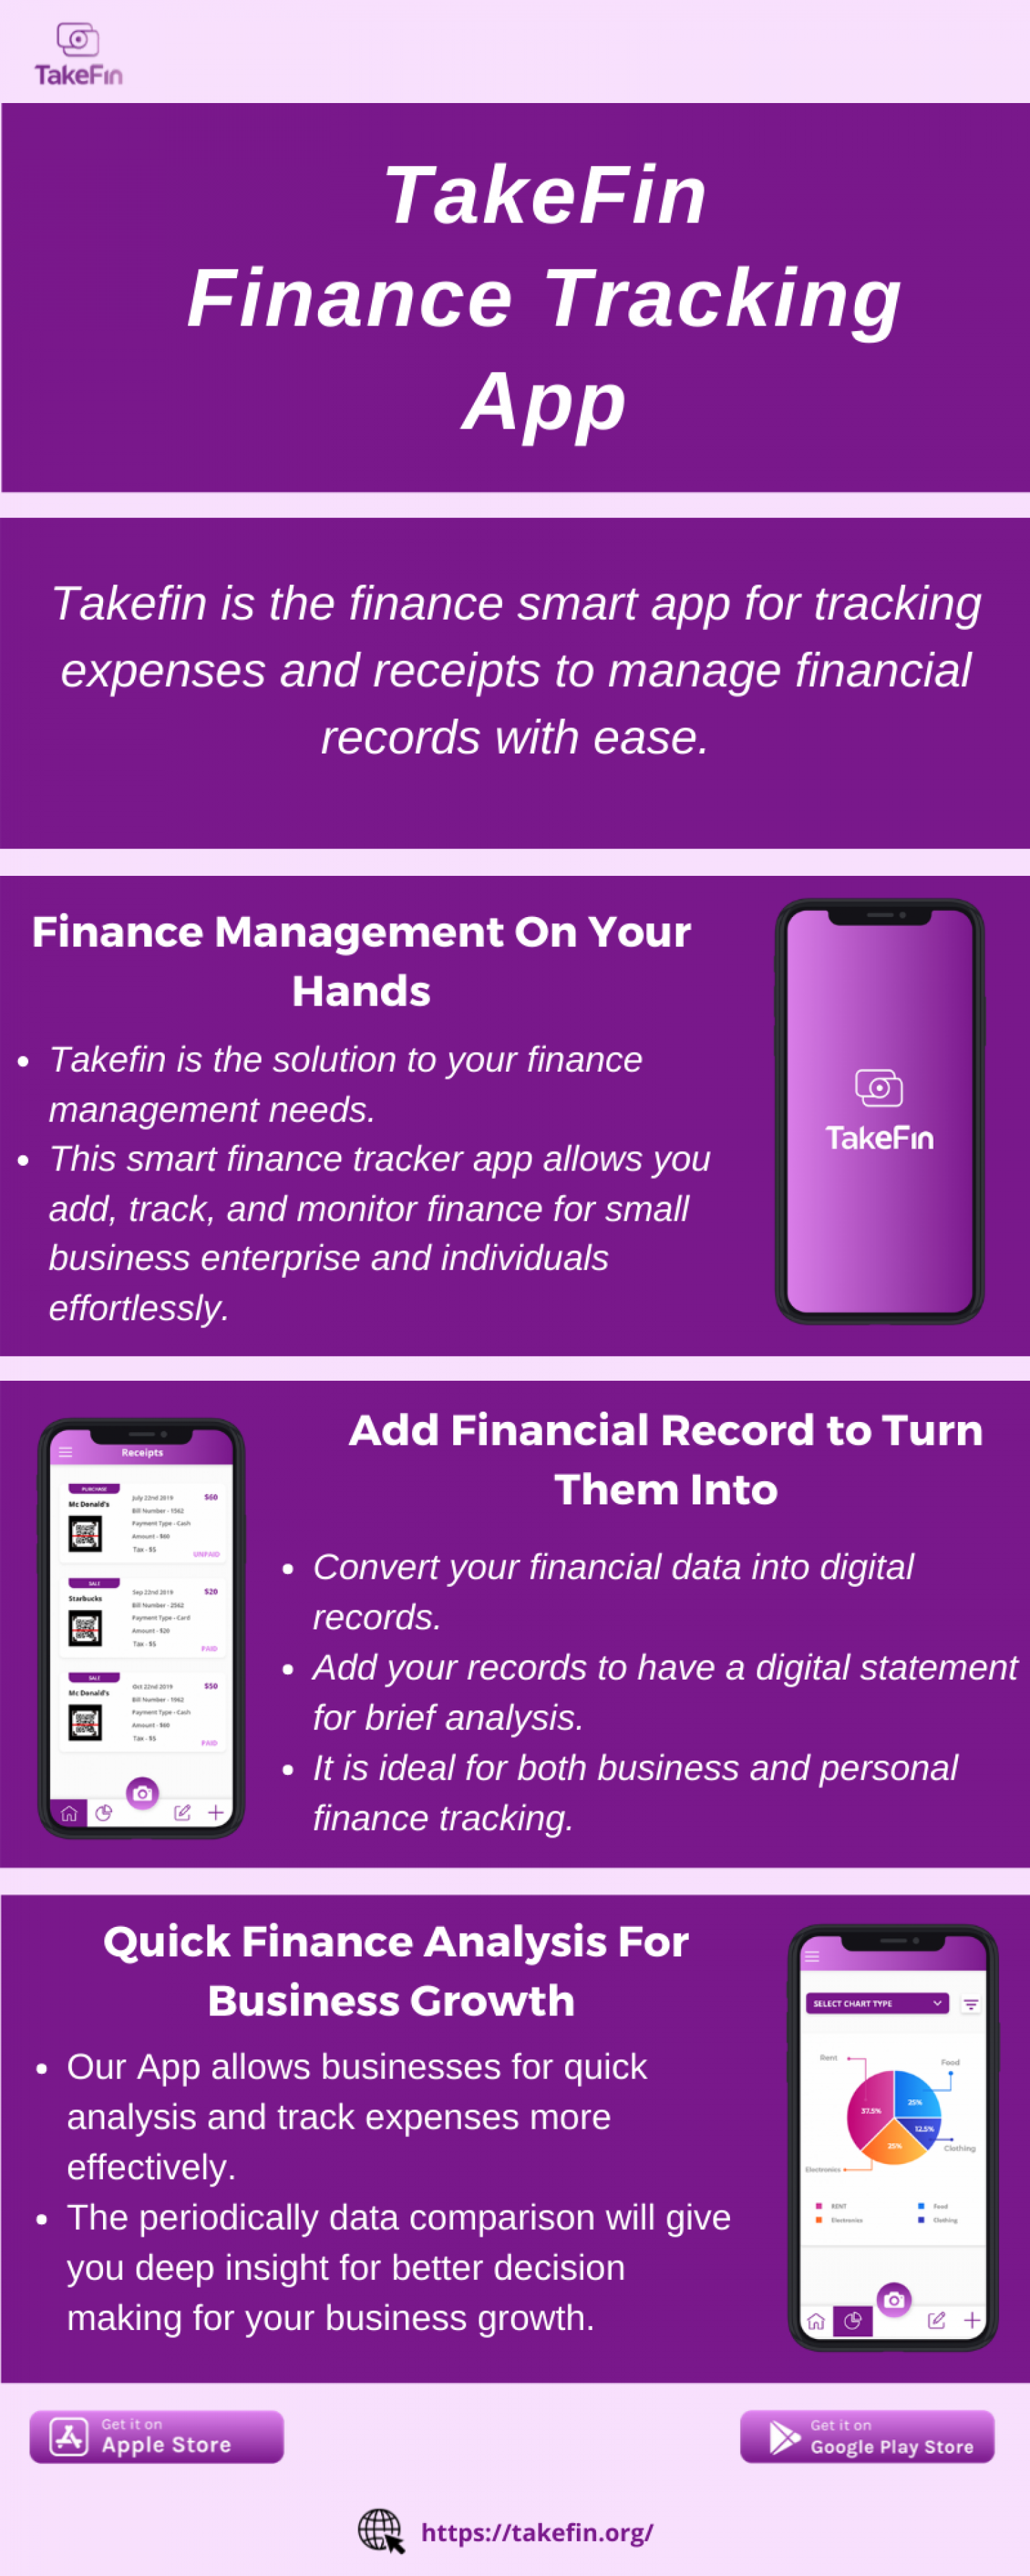 TakeFin Finance - Business/Personal Finance Tracking App Infographic